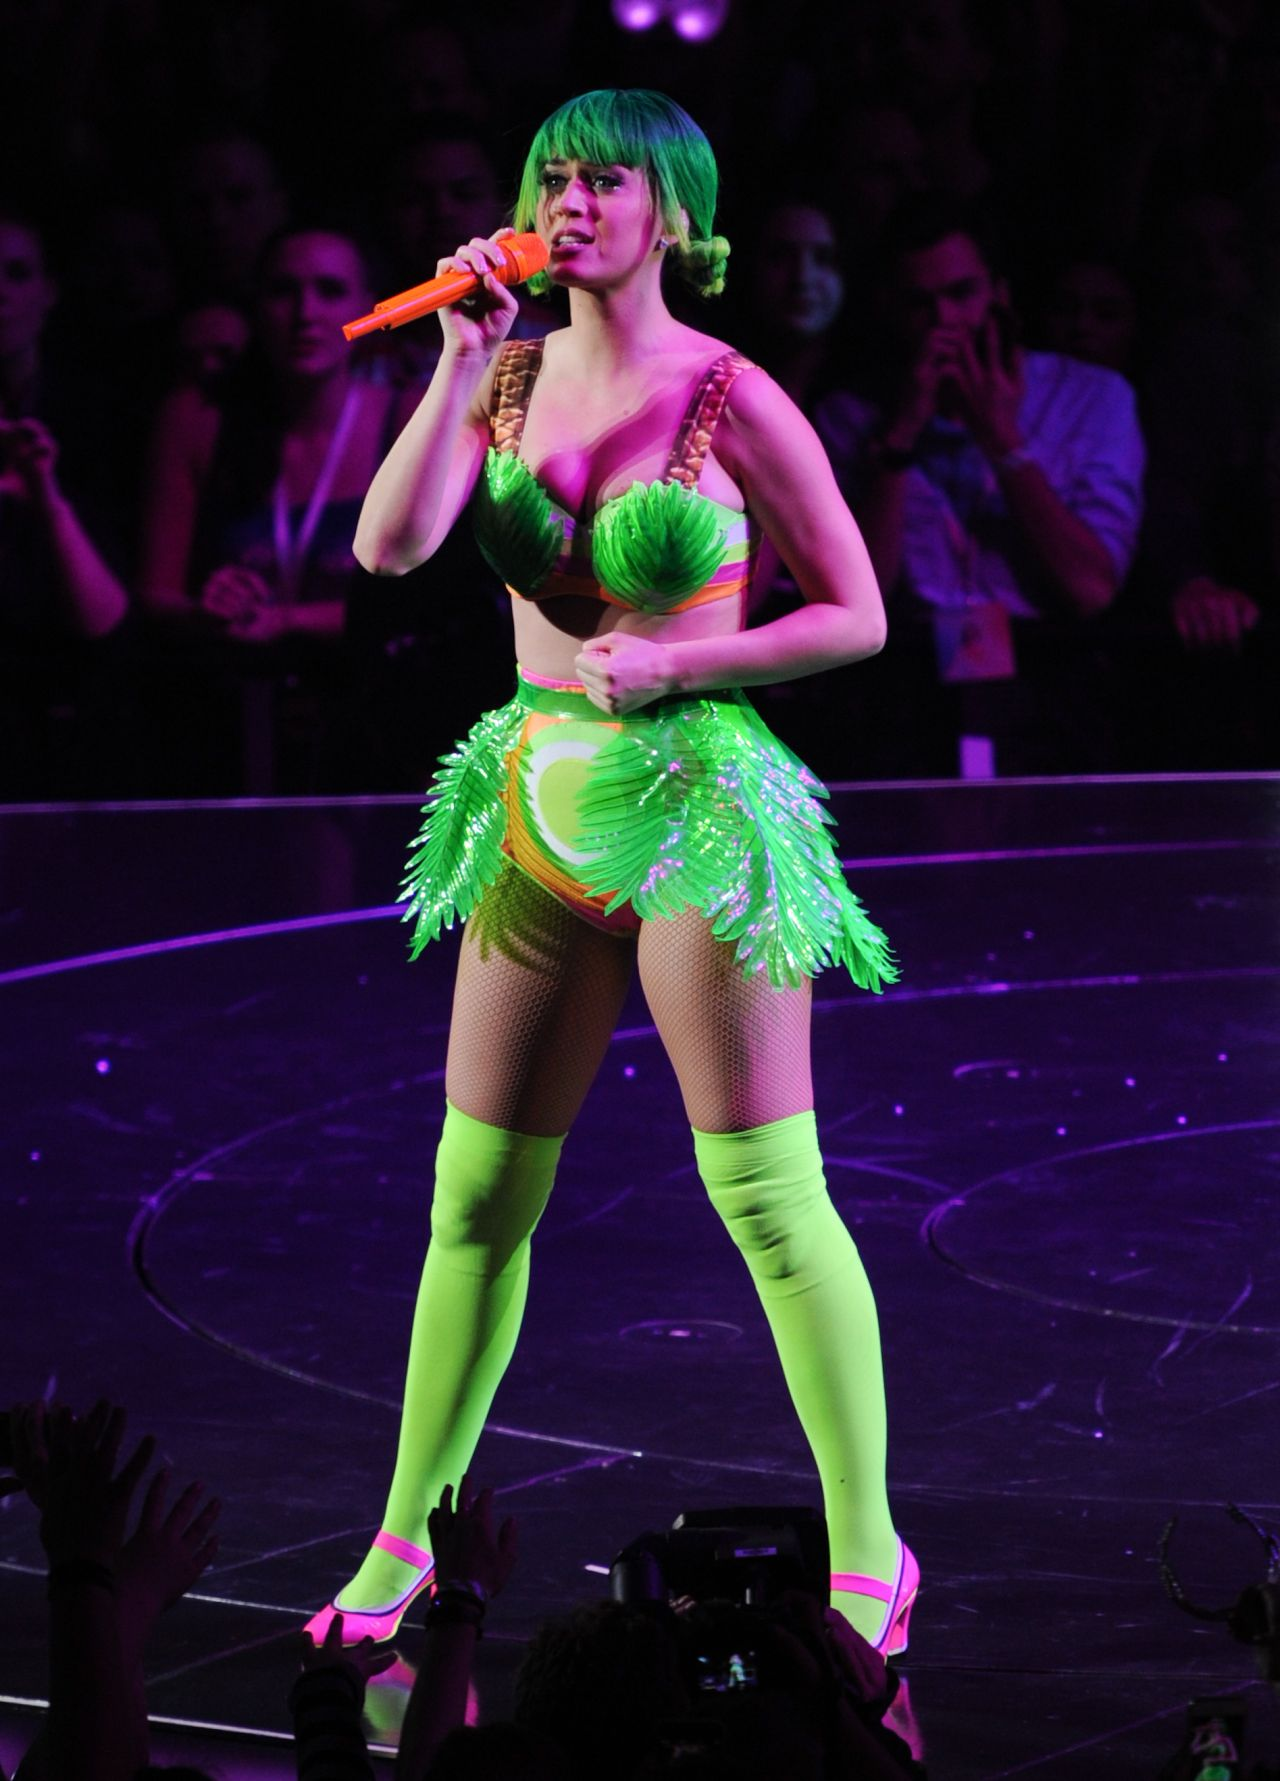 Katy perry the prismatic world tour california girl 10